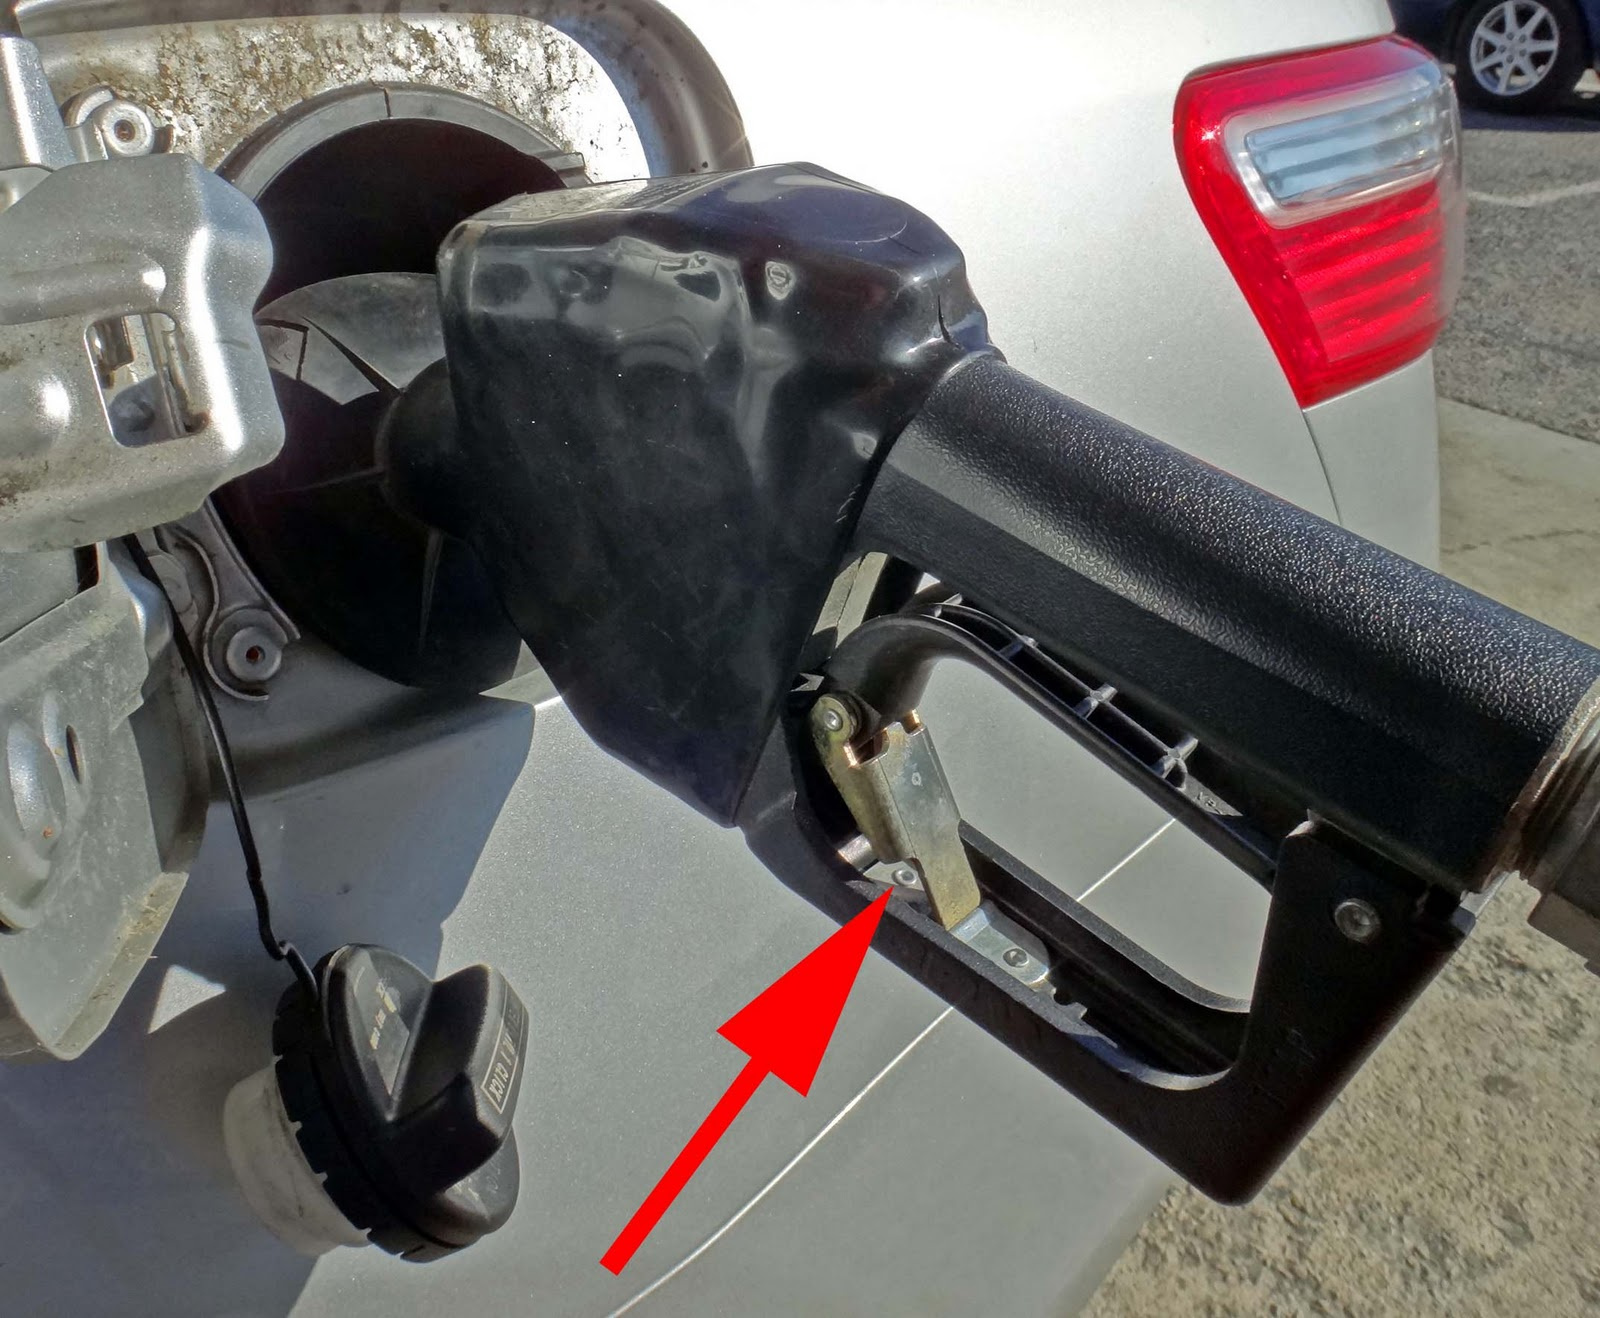 Can You Leave Car Running While Pumping Gas